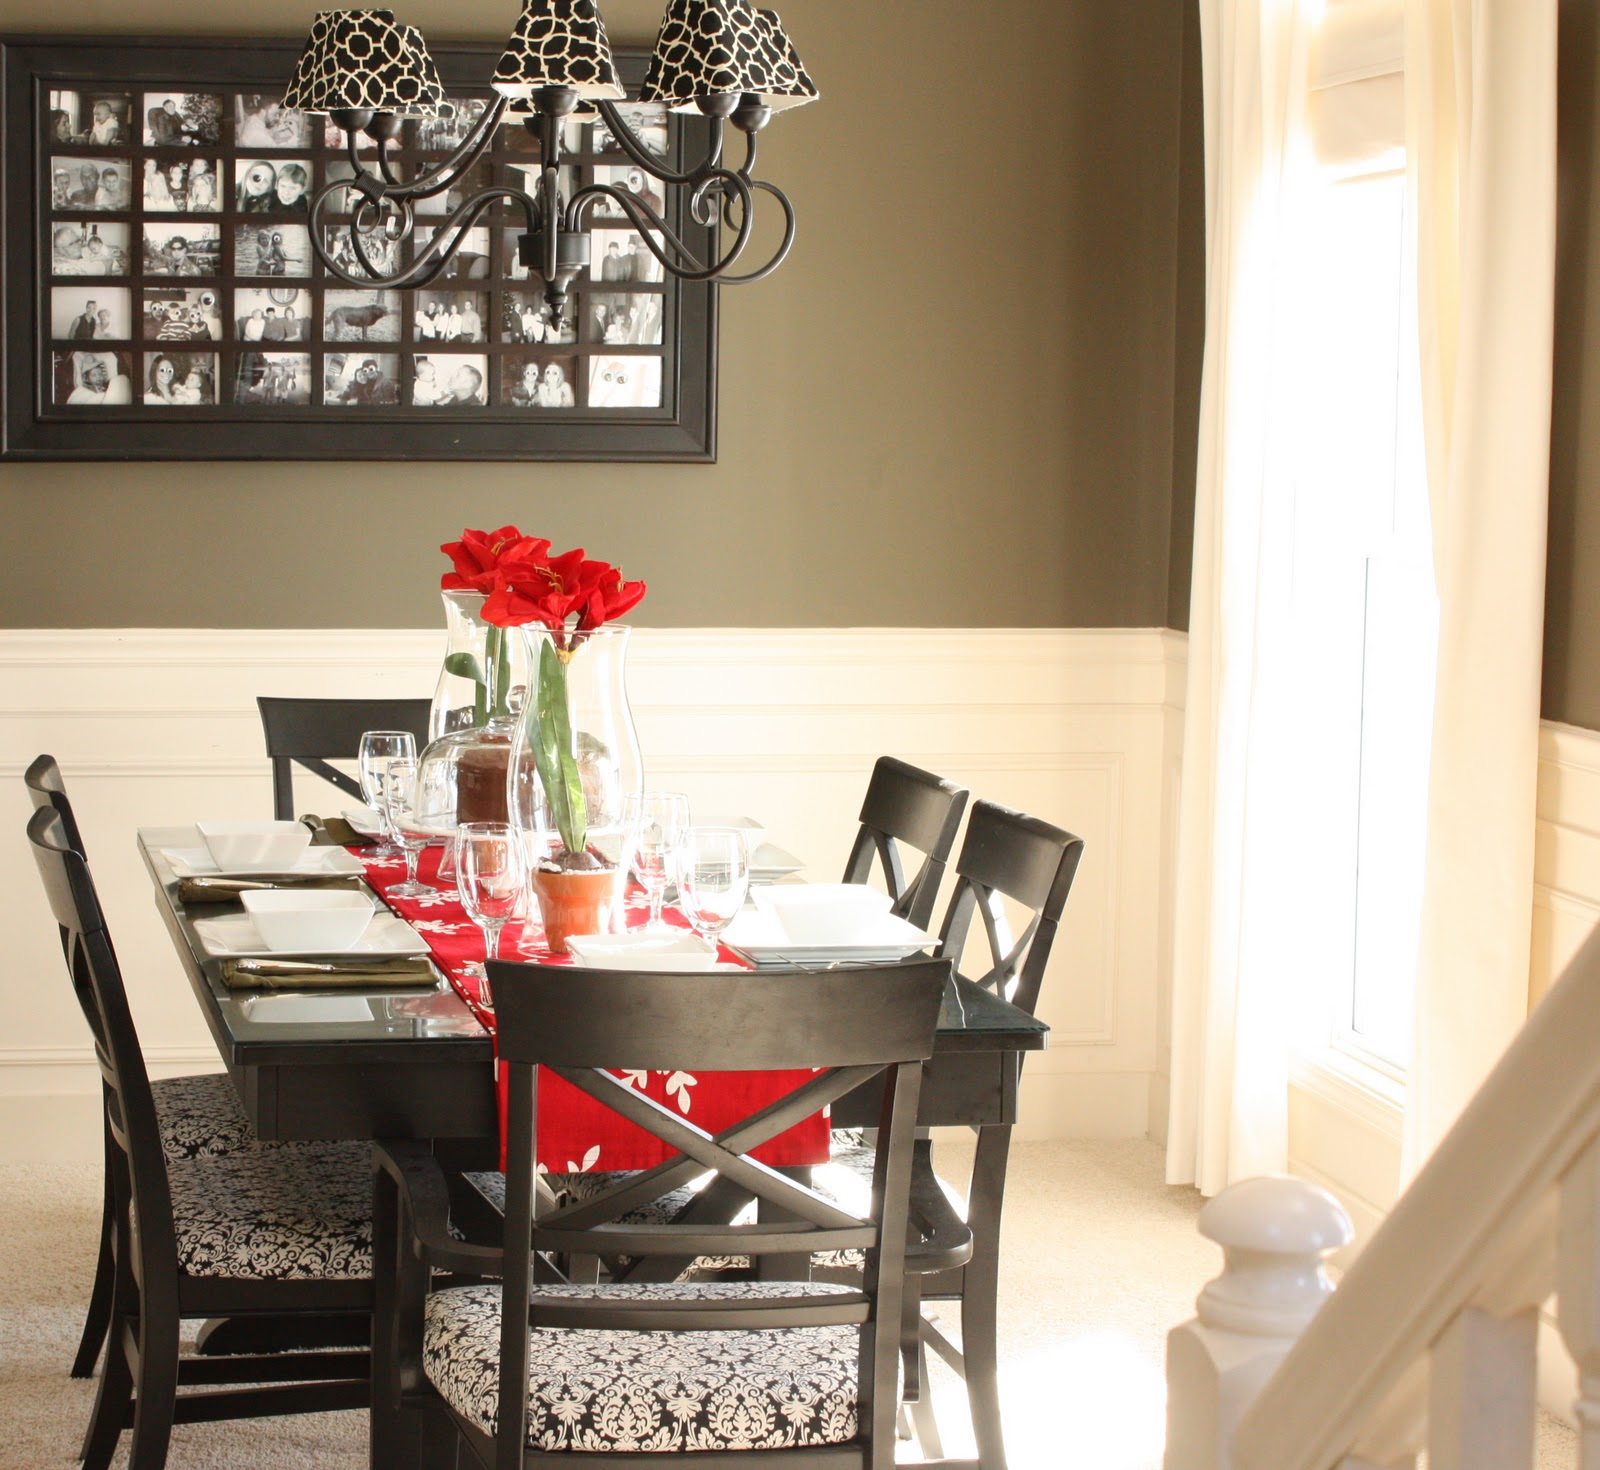 Dining Room Decor On Table With Red Flower And Six Chairs Stylish  CHandelier And Frames